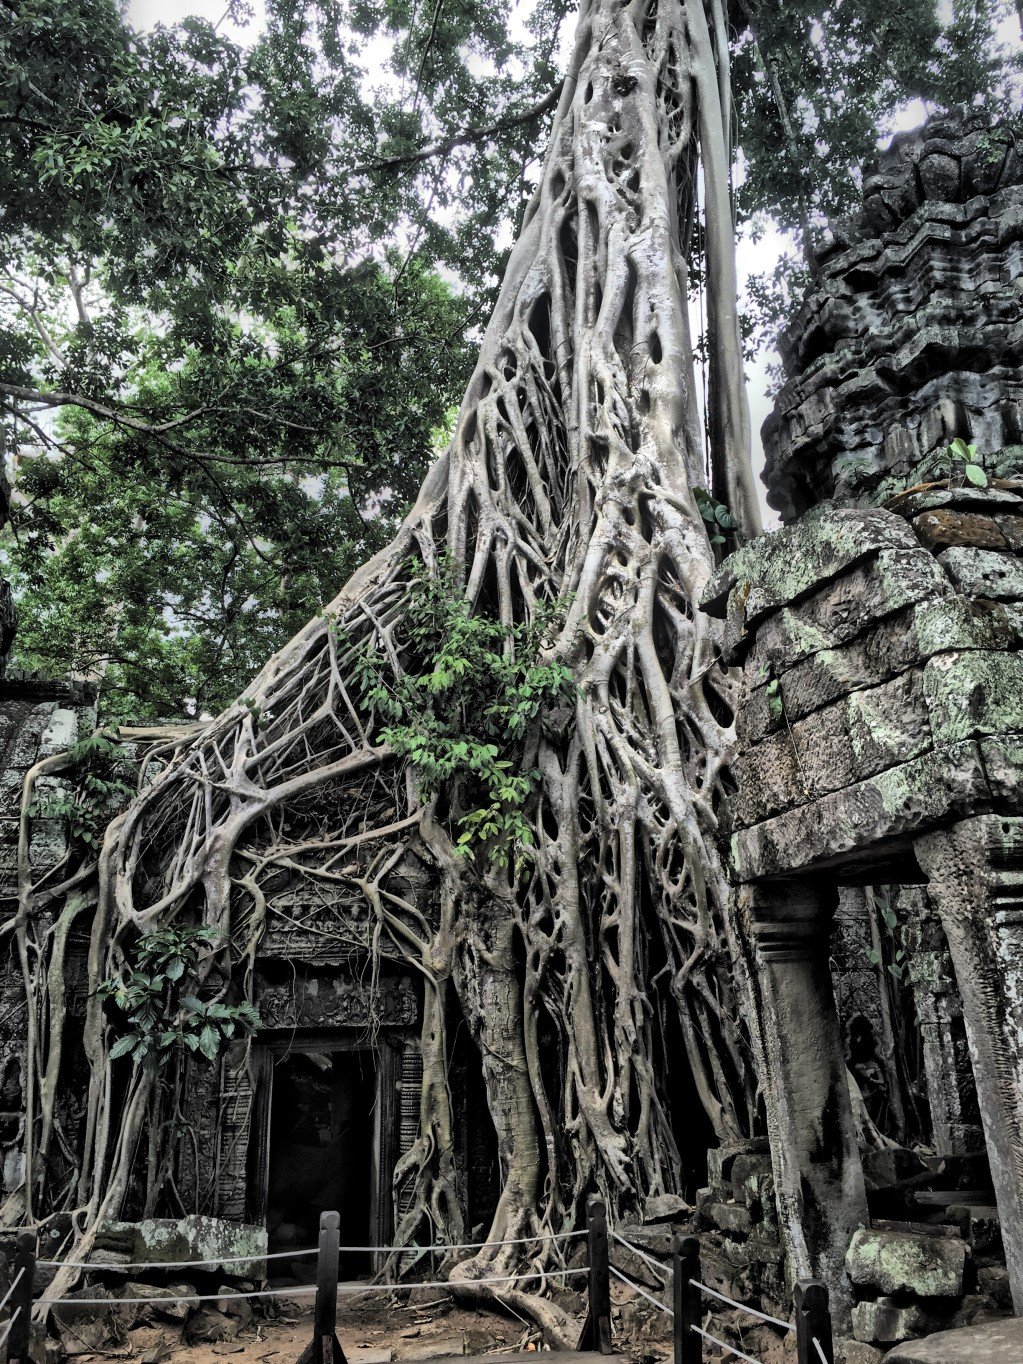 IMG 1994 e1442629000401 - 20 Photos That Prove Angkor is the Best Destination in the World